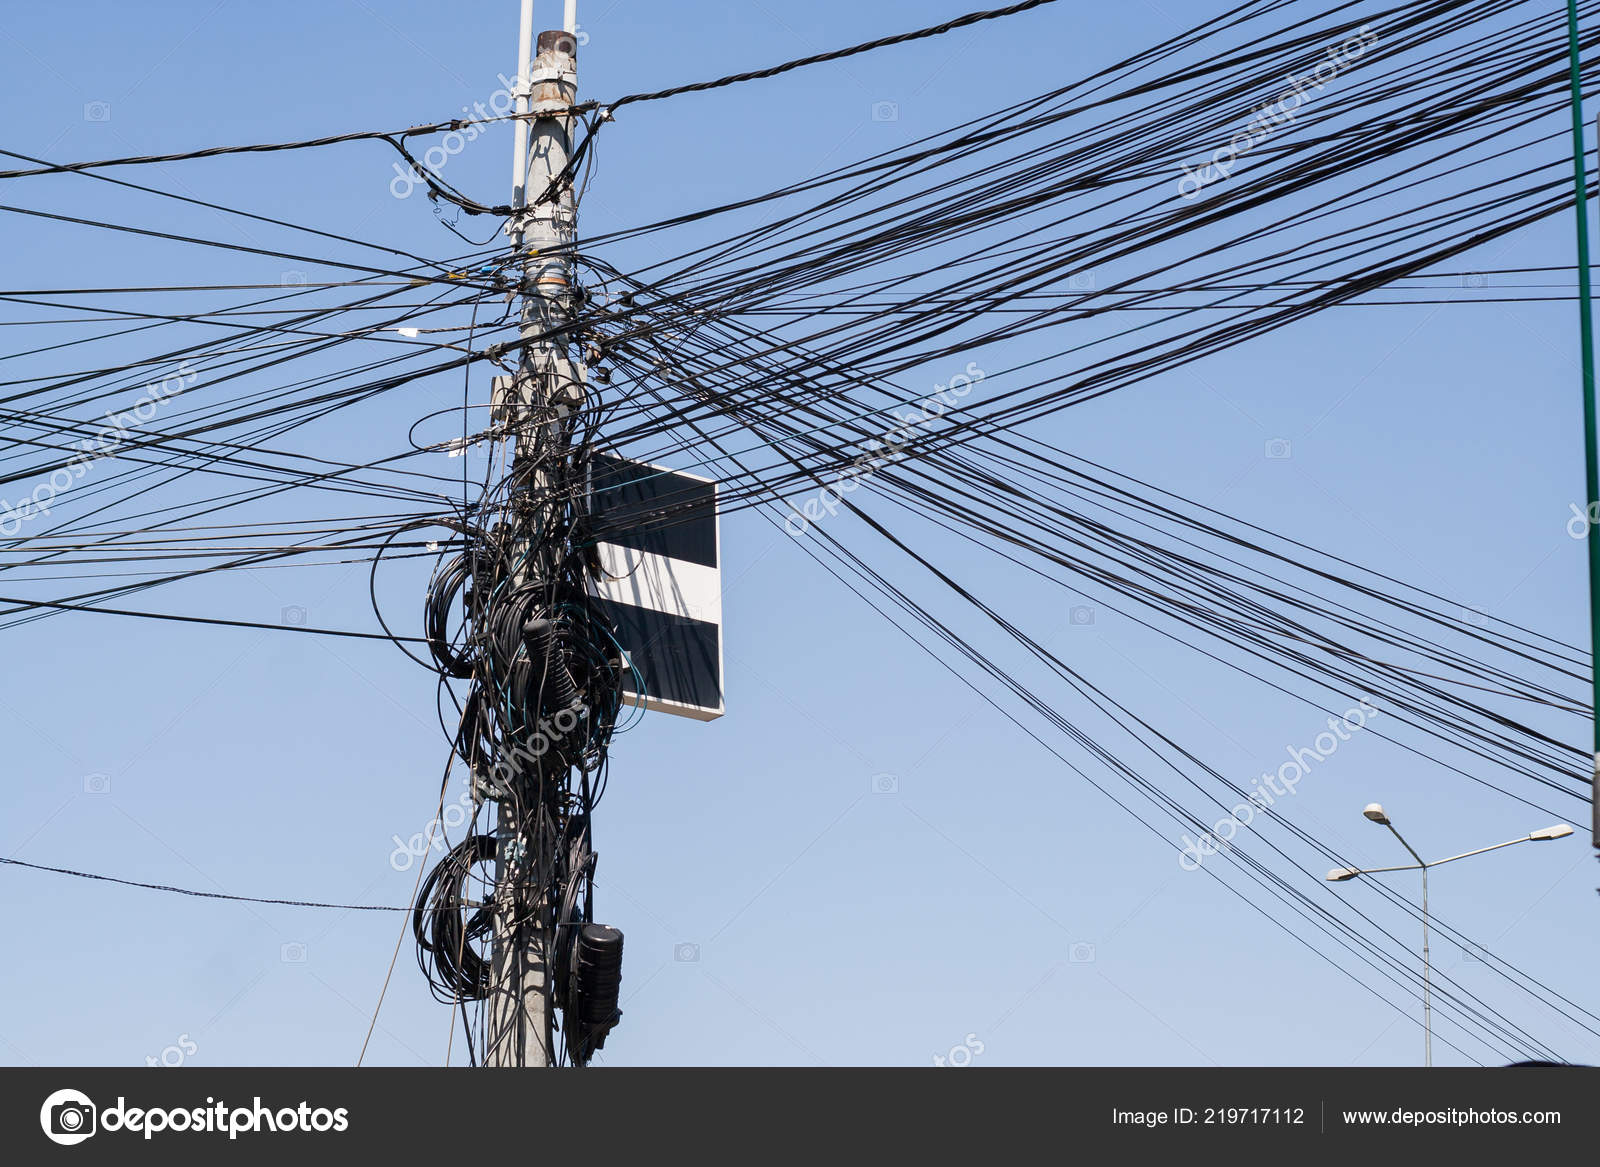 Many Electrical Wires Pole Messy Electric Cables Stock Photo C Dechevm 219717112